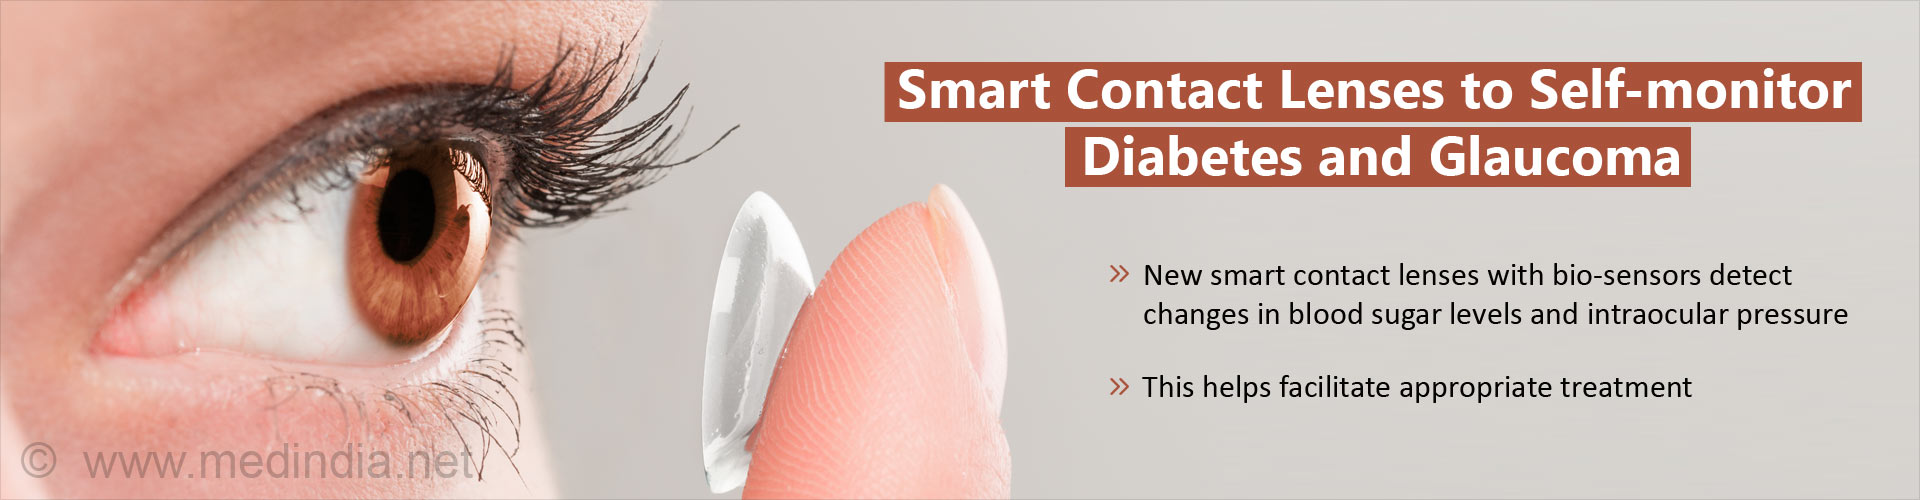 Try Self-monitoring Diabetes and Glaucoma With Smart Contact Lenses